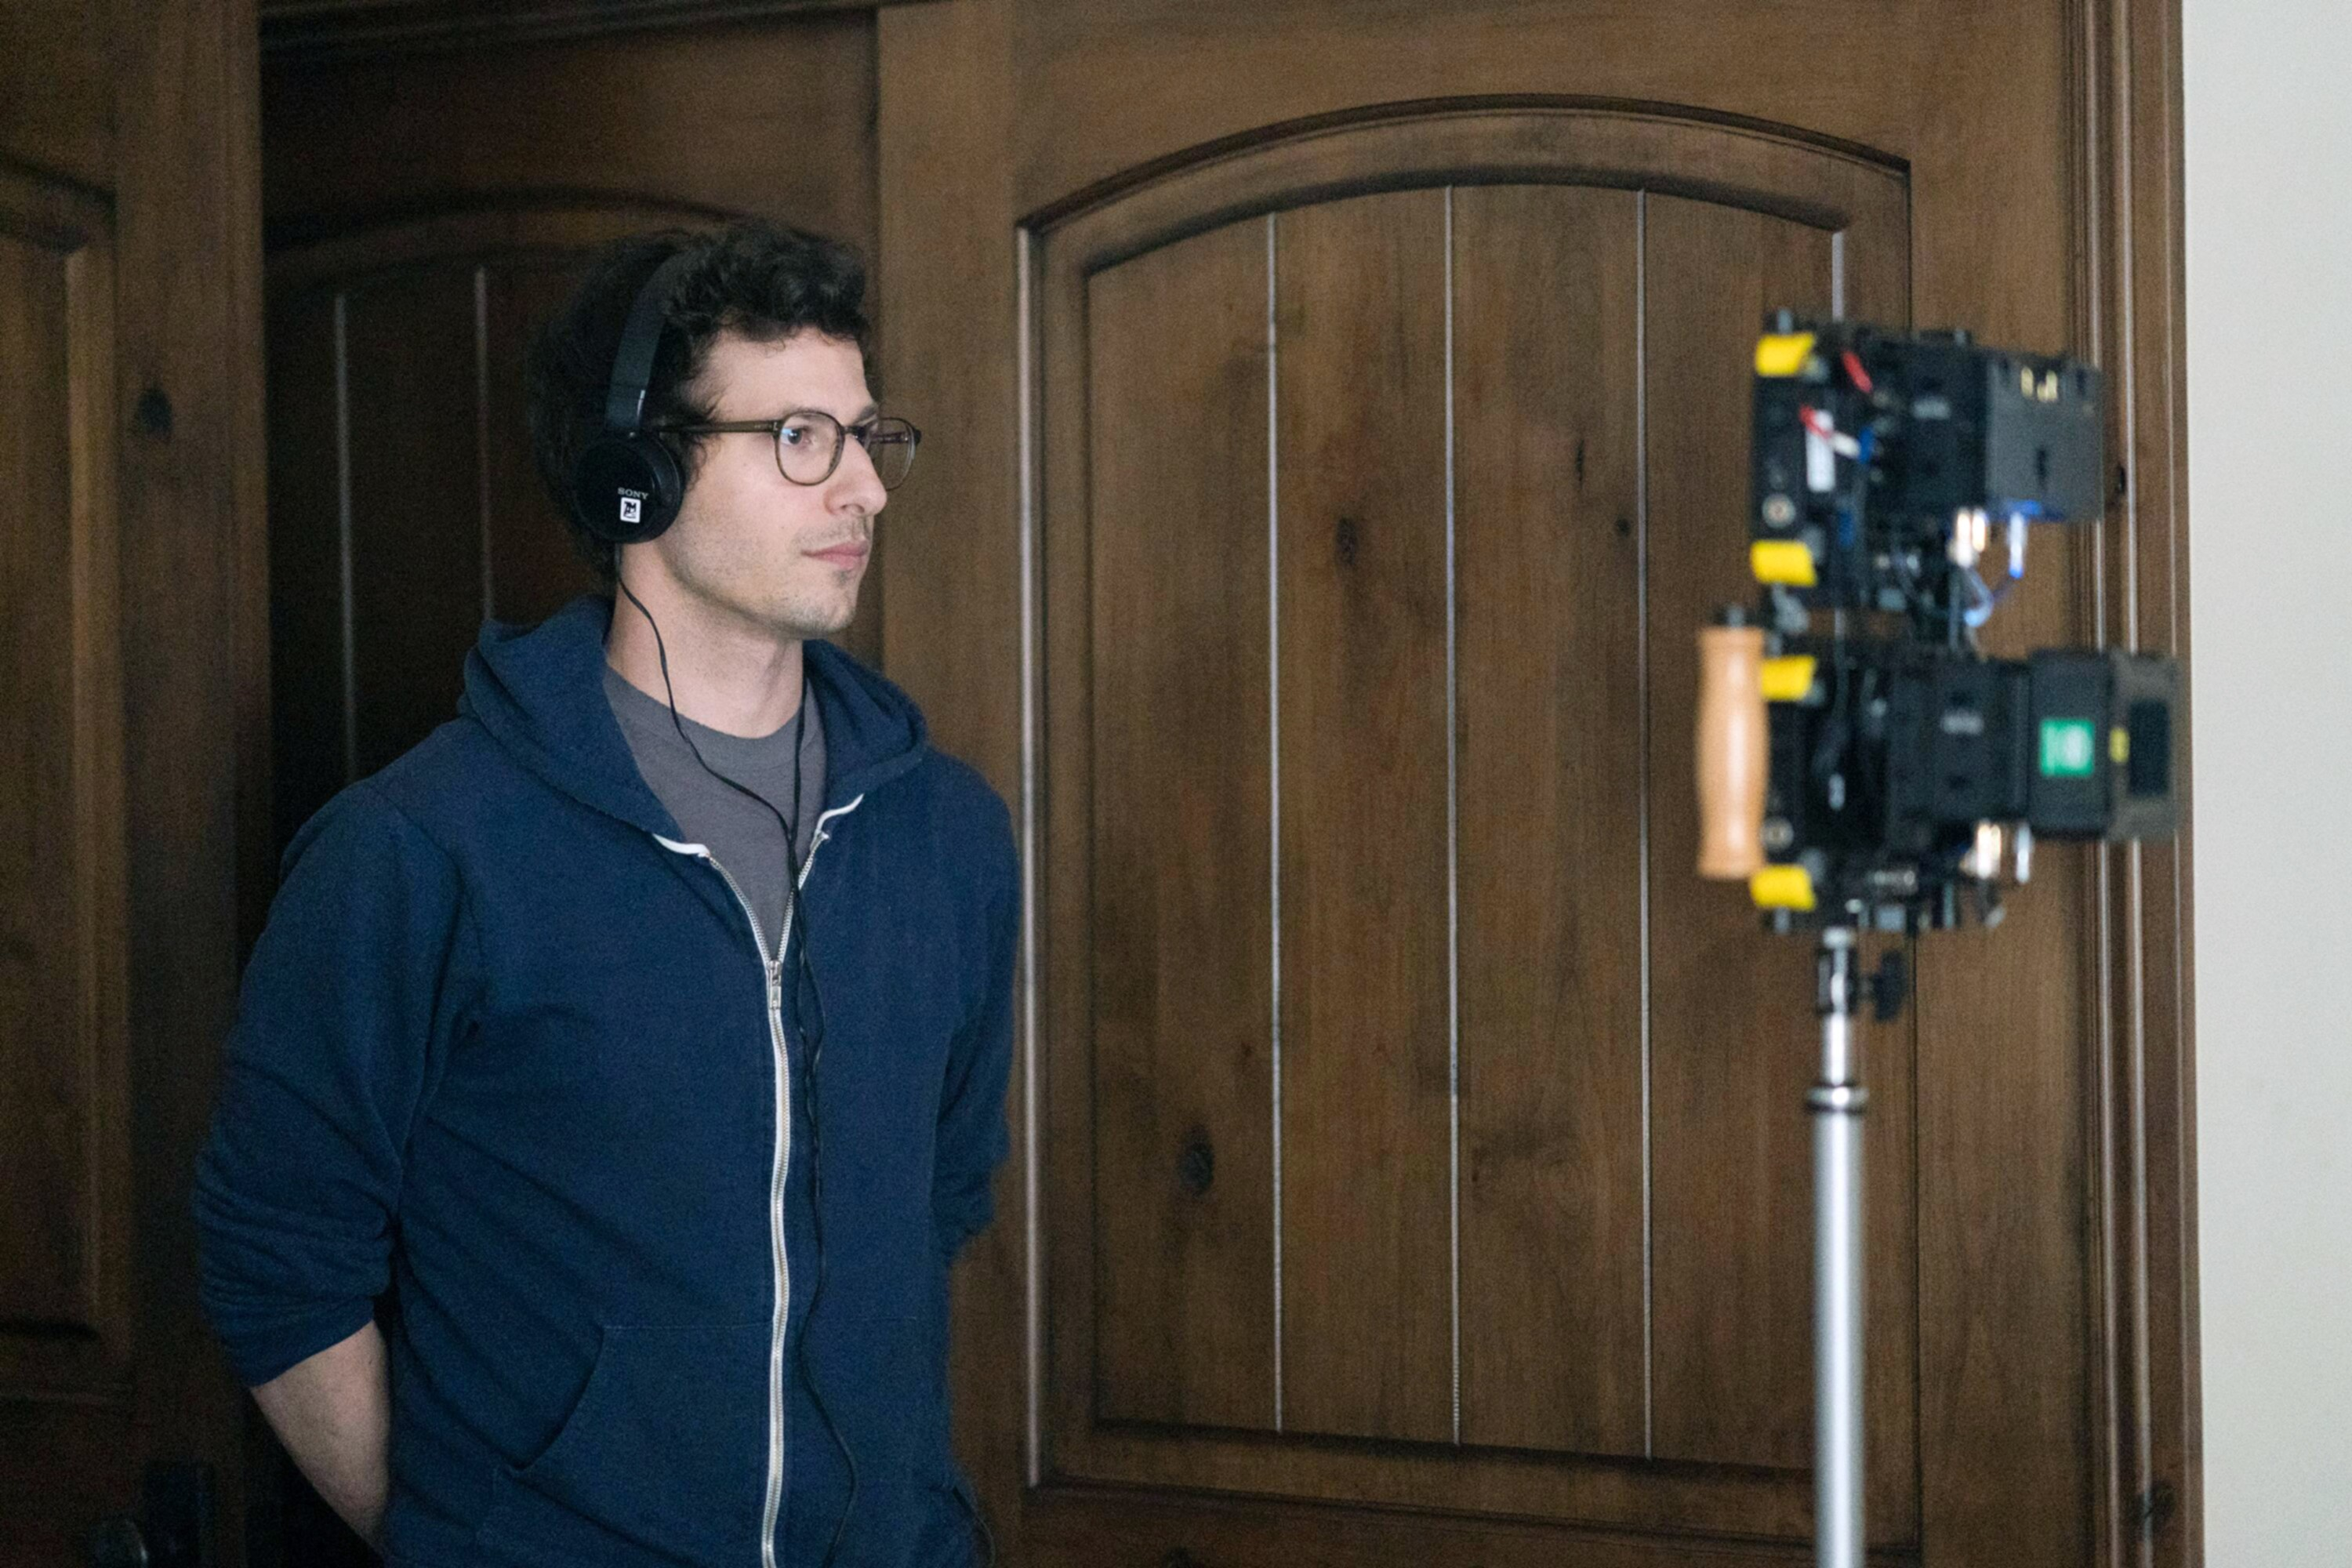 PALM SPRINGS, producer Andy Samberg, on set, 2020. ph: Chris Willard / © Hulu / Courtesy Everett Collection